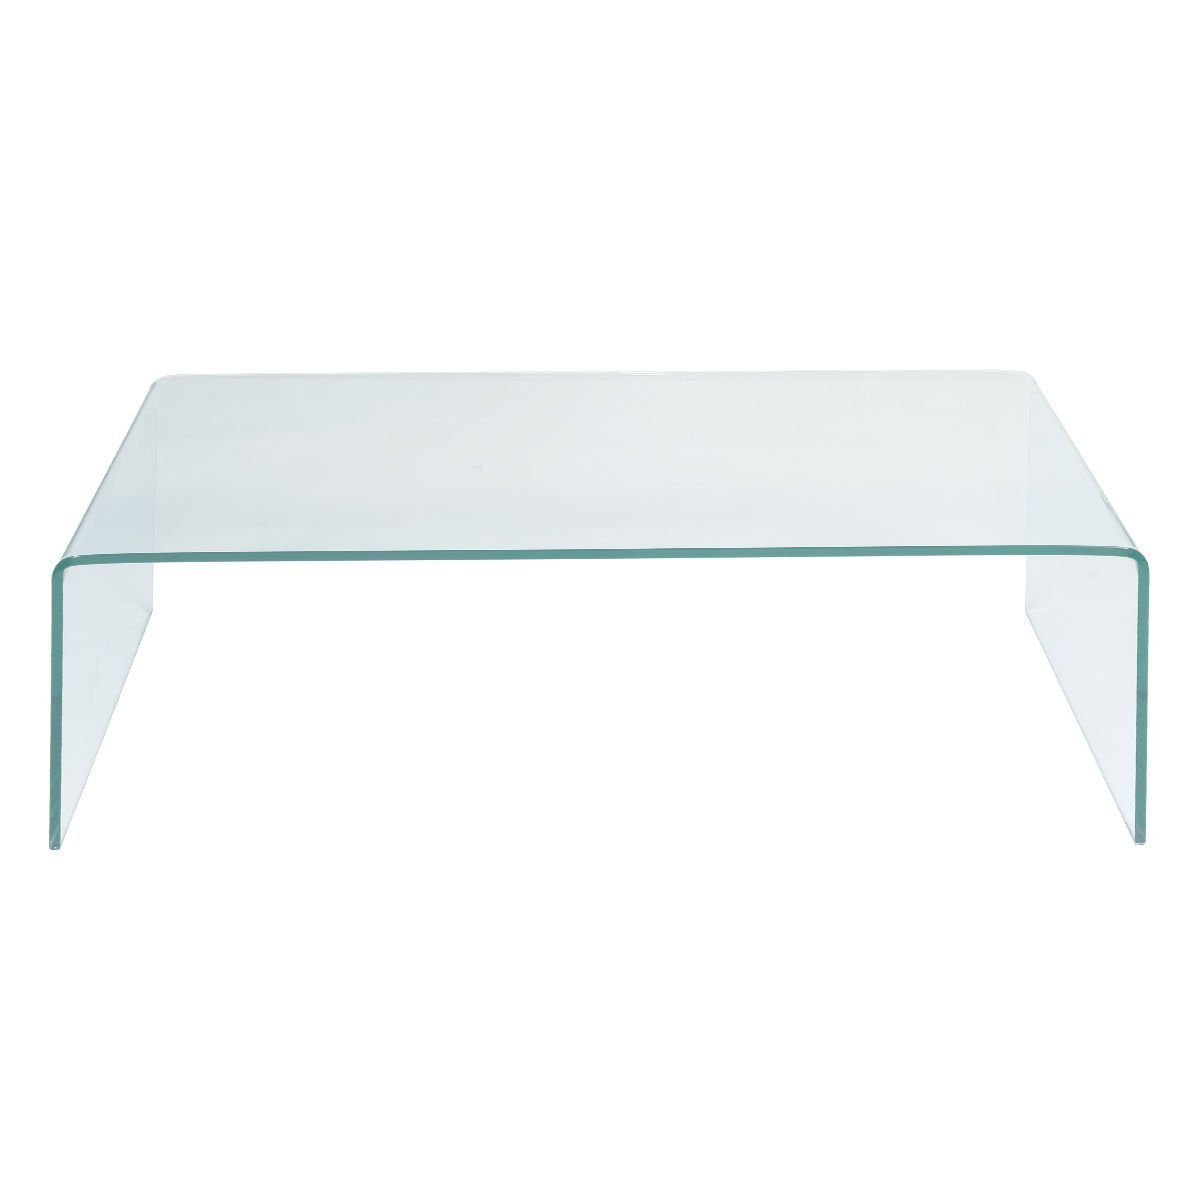 Copy of Copy of Copy of Glass coffee table